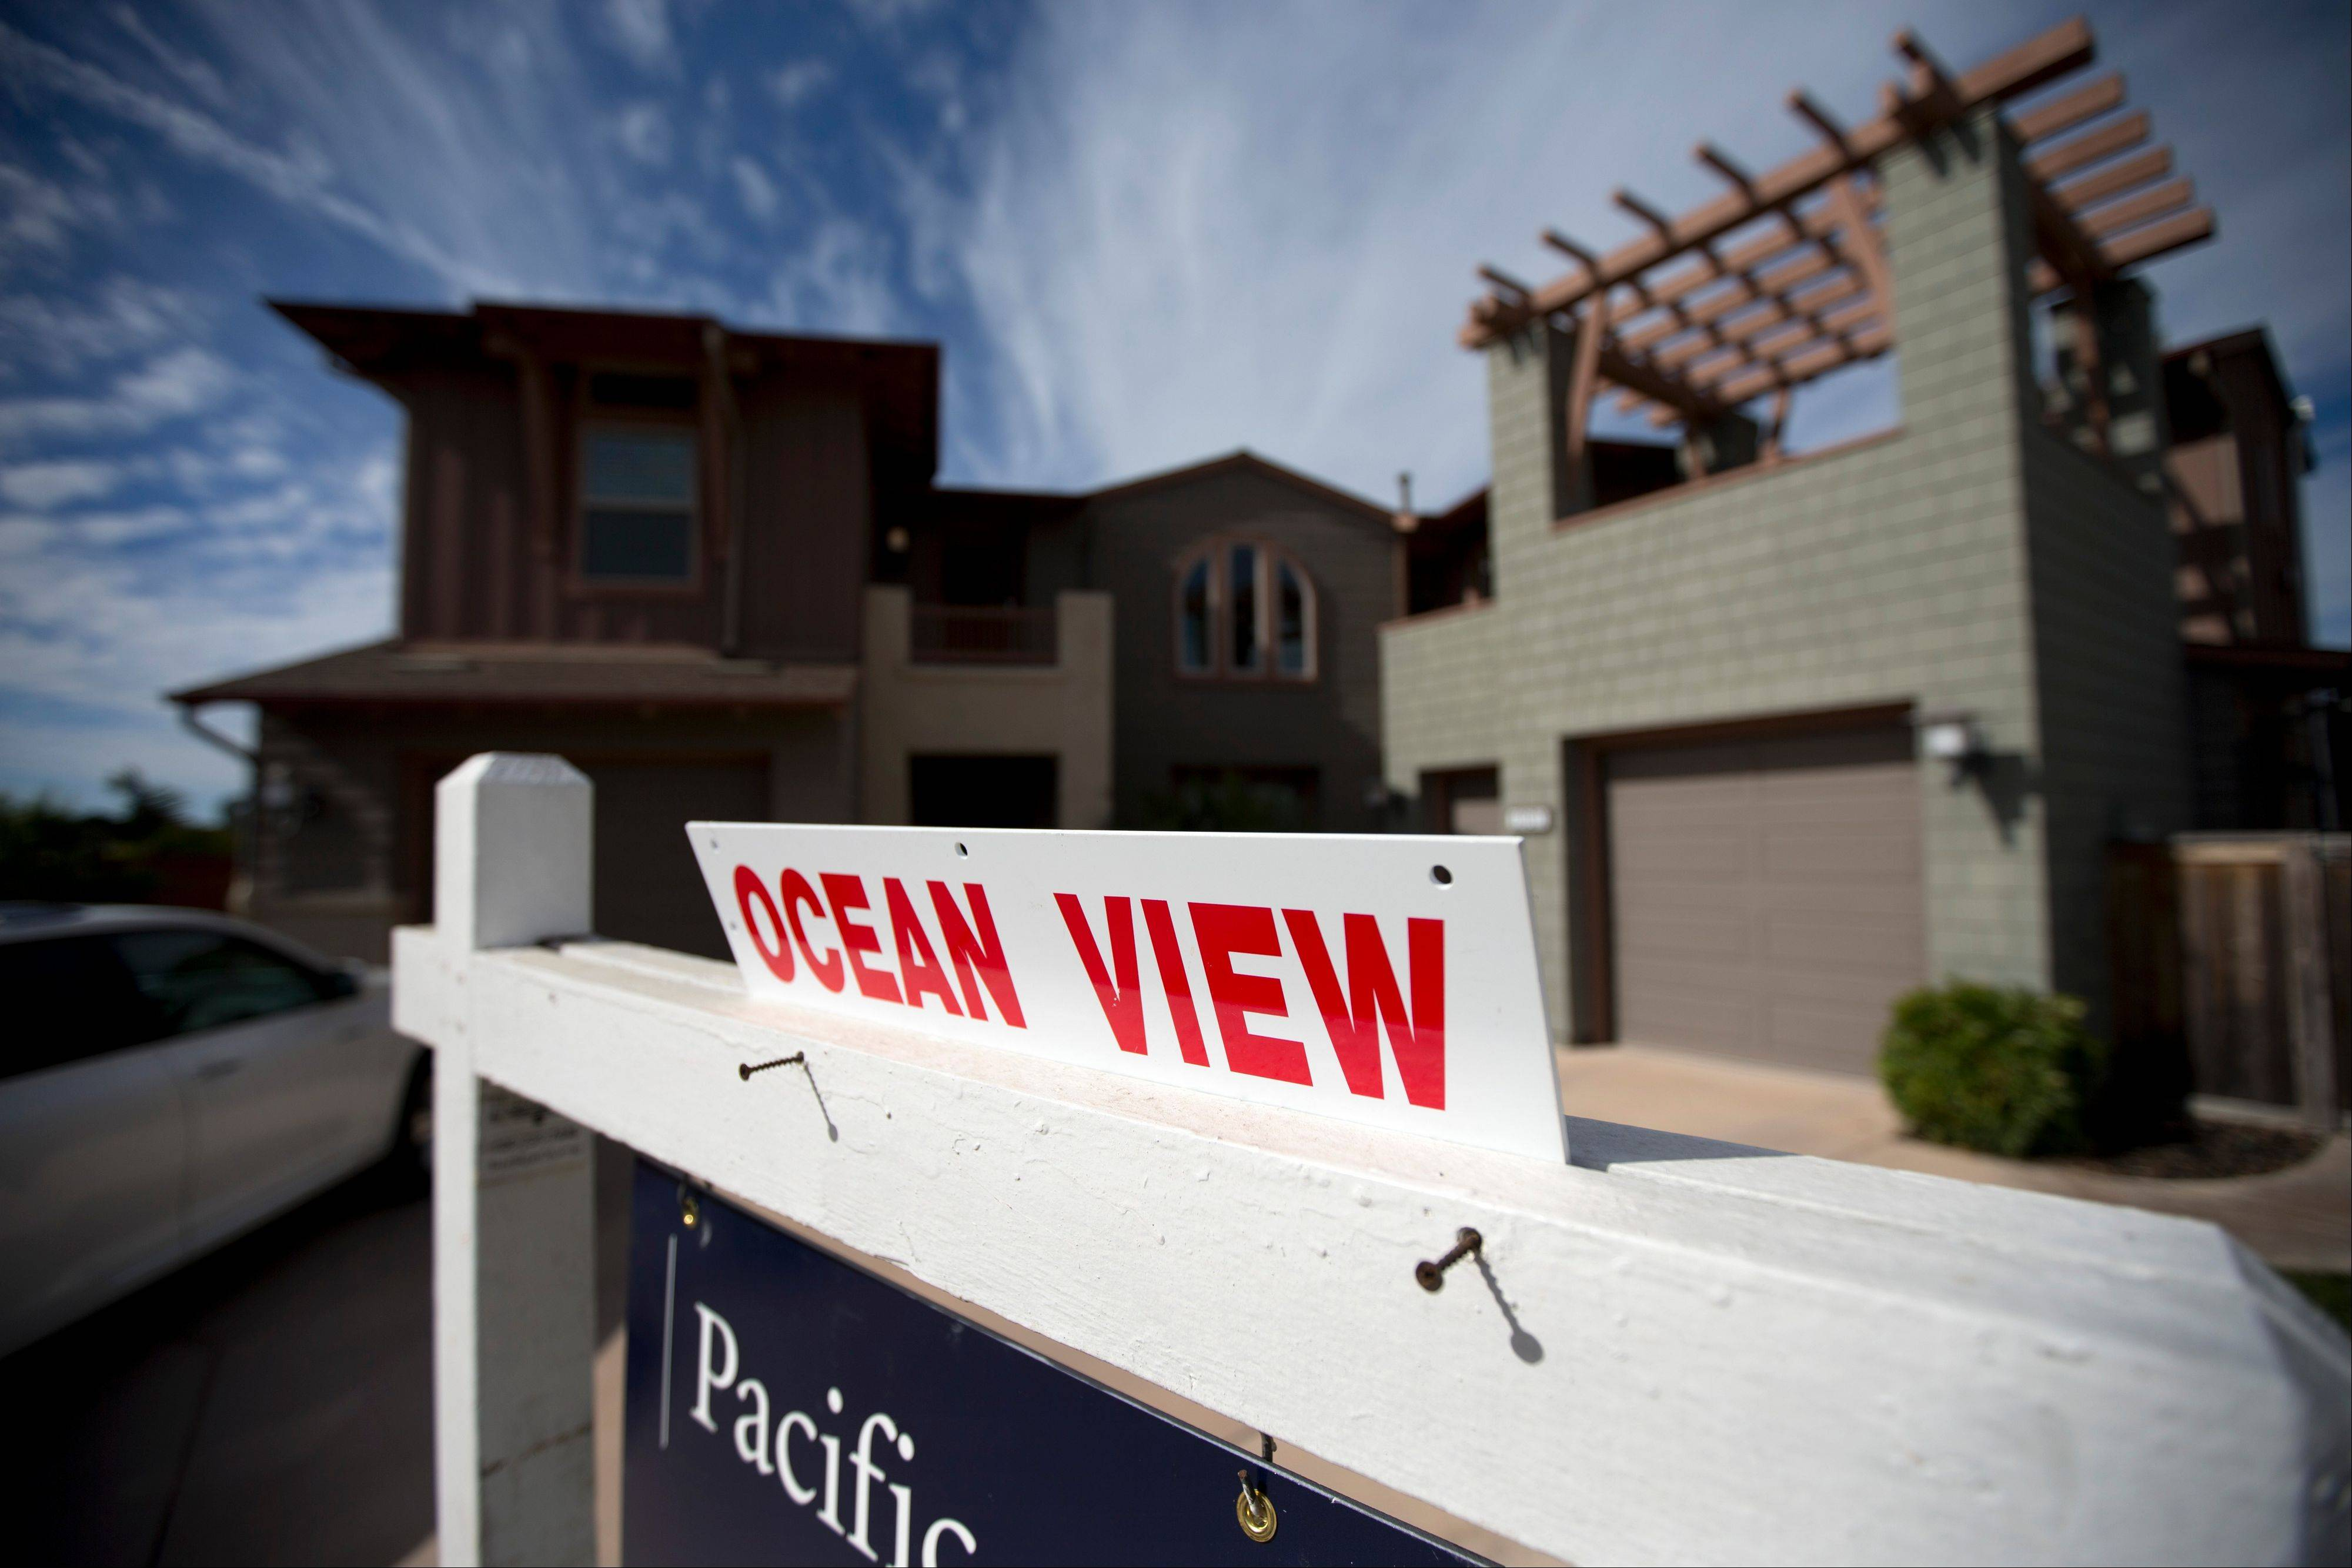 U.S. home prices jumped by the most in 6 ½ years in December, spurred by a low supply of available homes and rising demand.